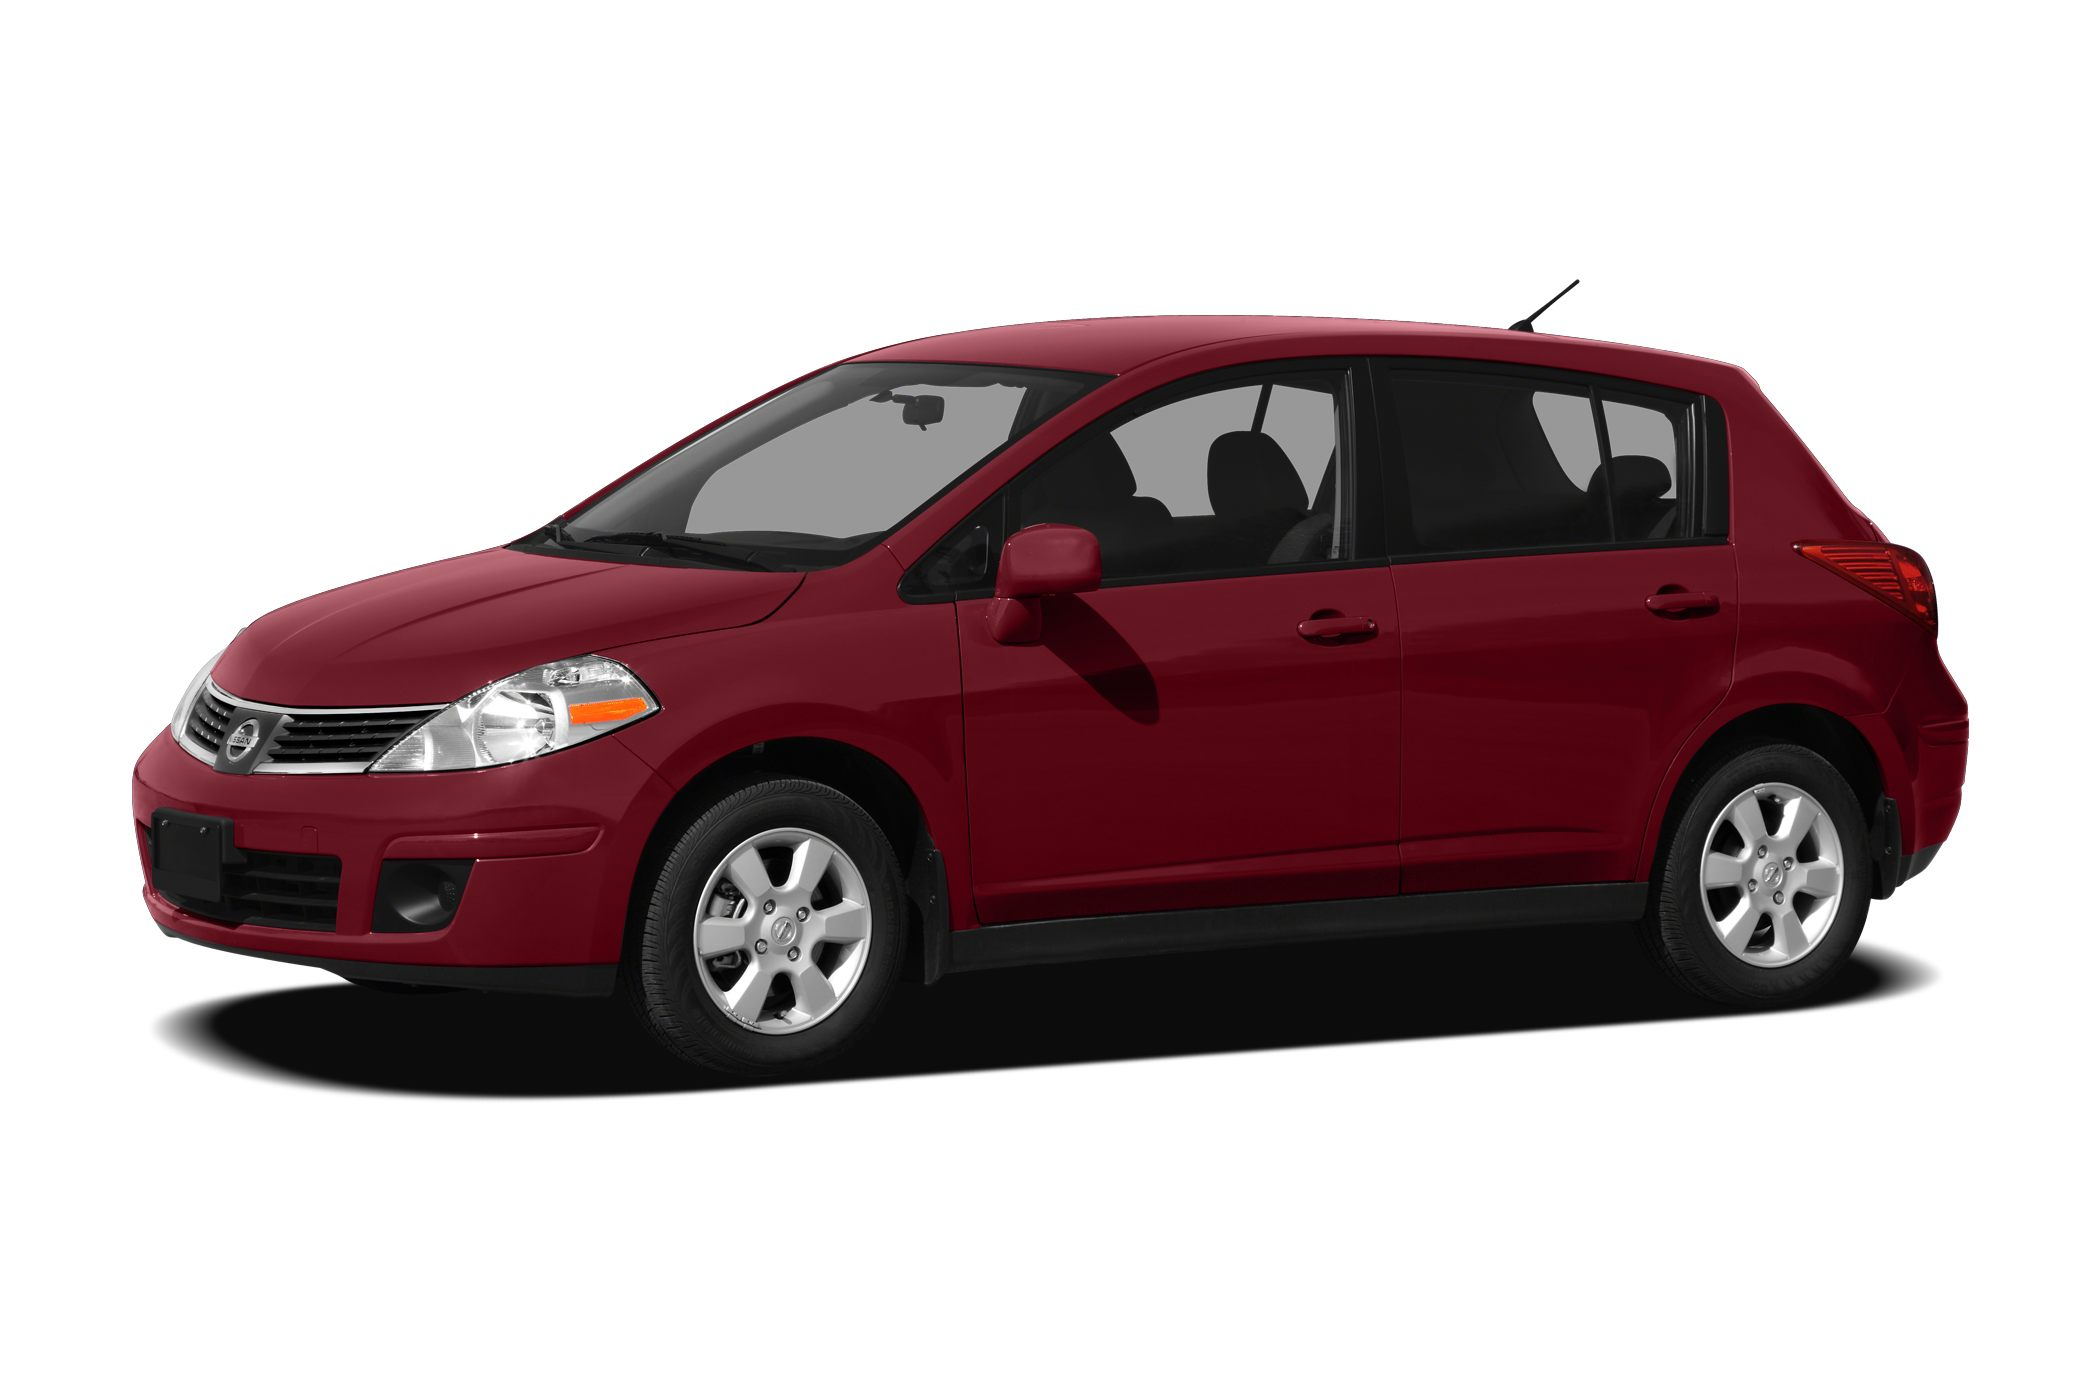 2012 Nissan Versa 18 S 2012 Nissan Versa Zoom Zoom Zoom Set down the mouse because this hot 20